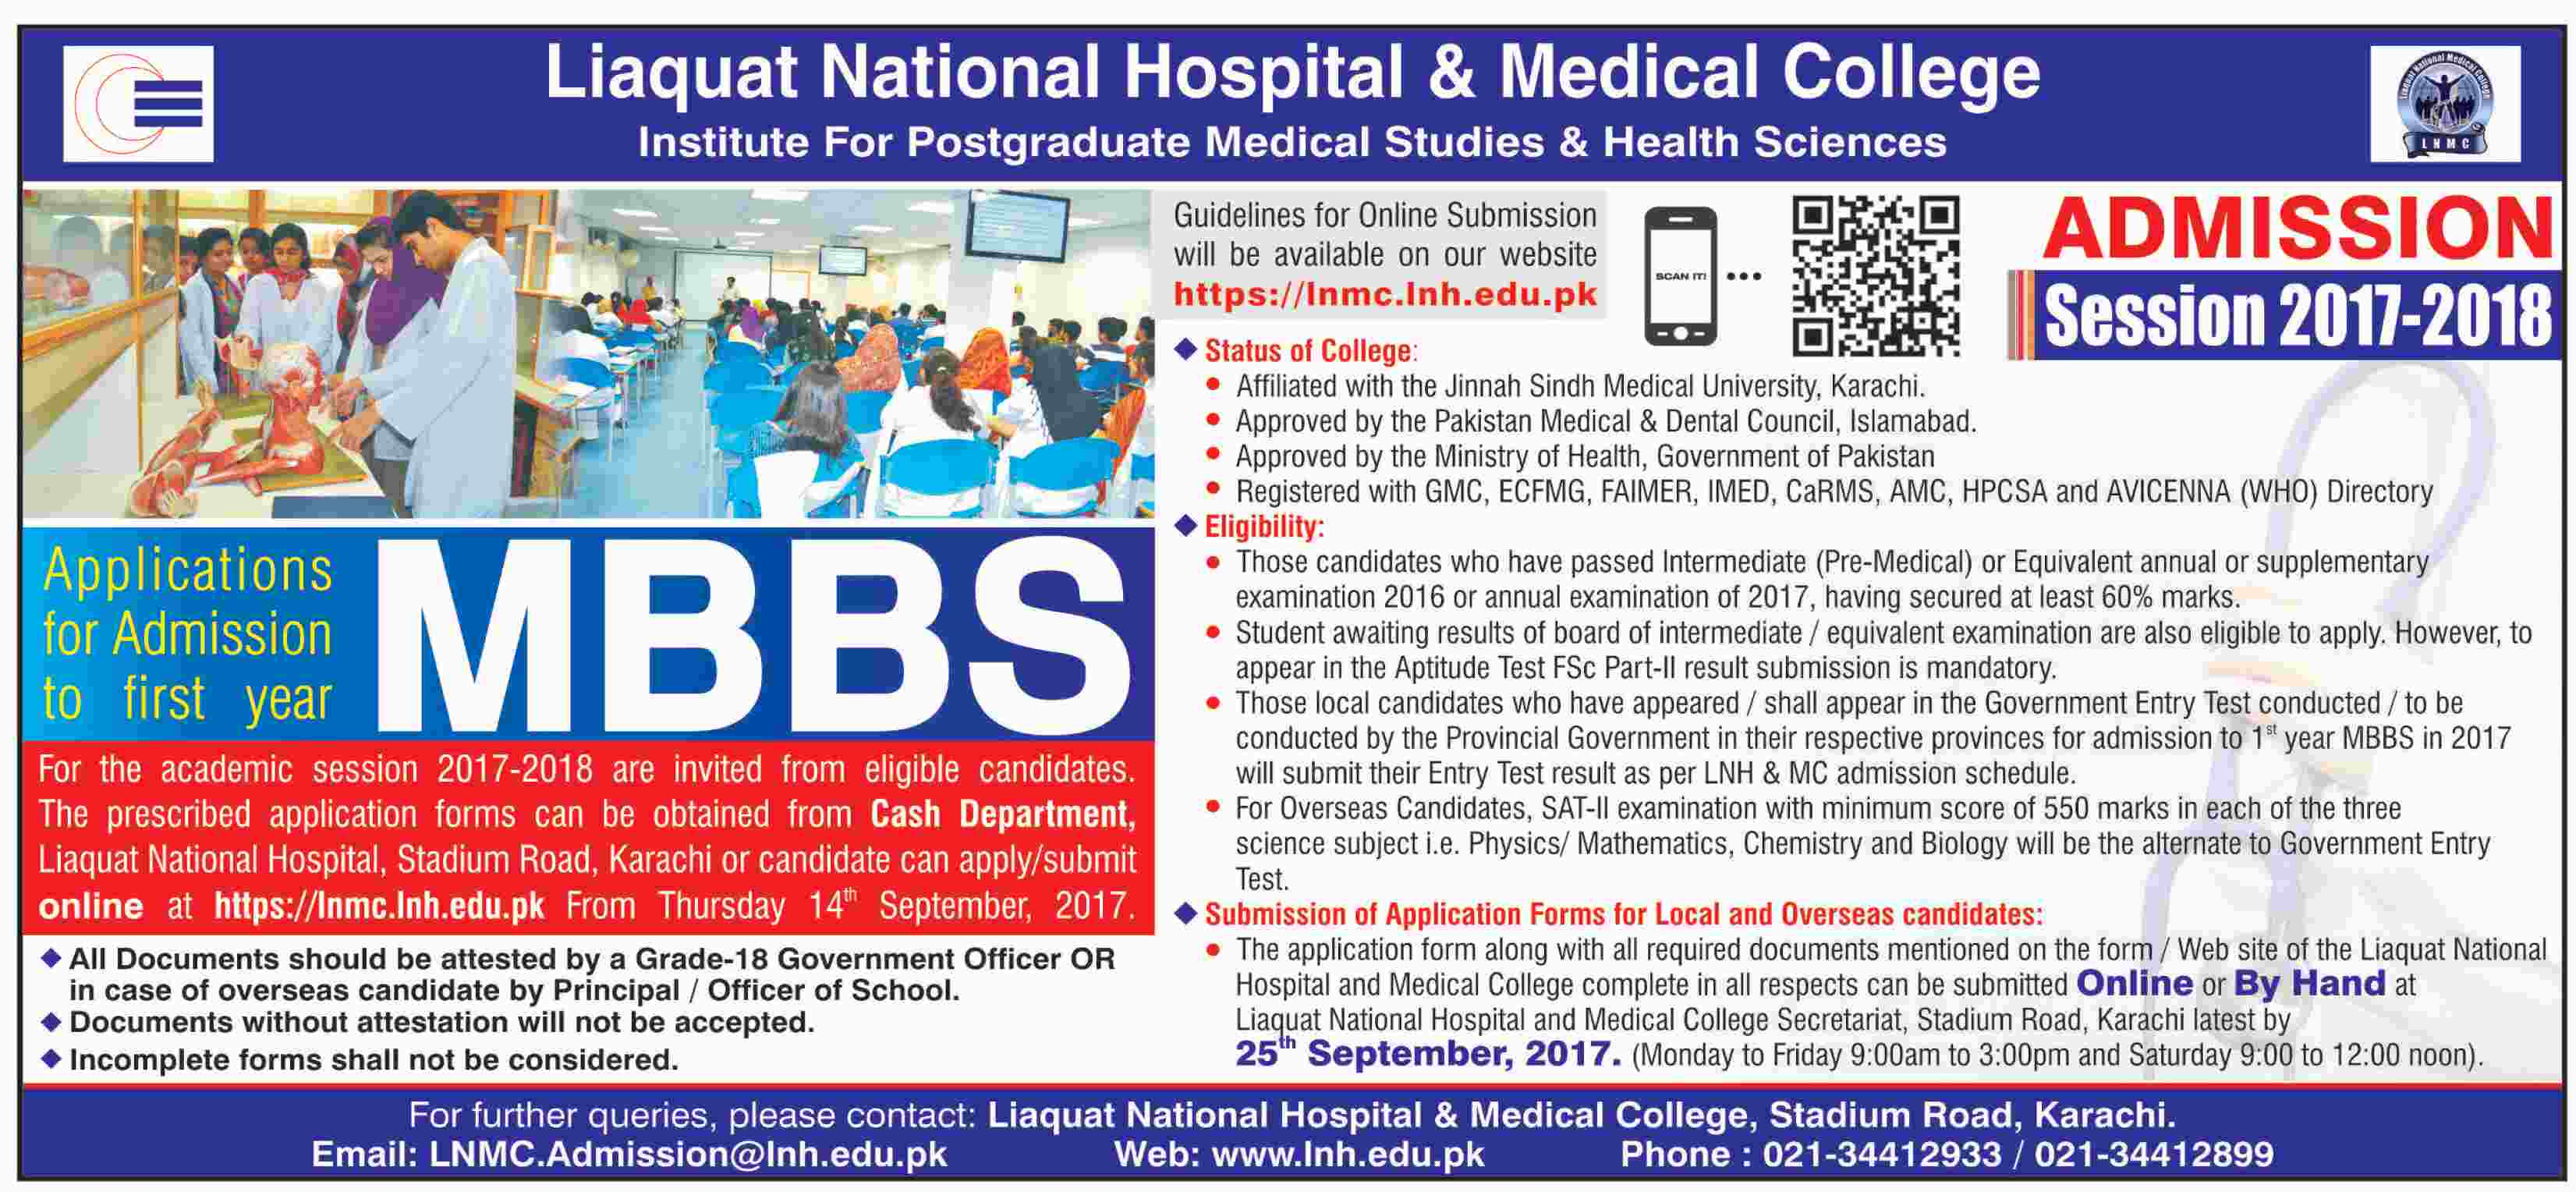 Liaquat National Medical College MBBS Admissions 2017-2018 Form Last Date